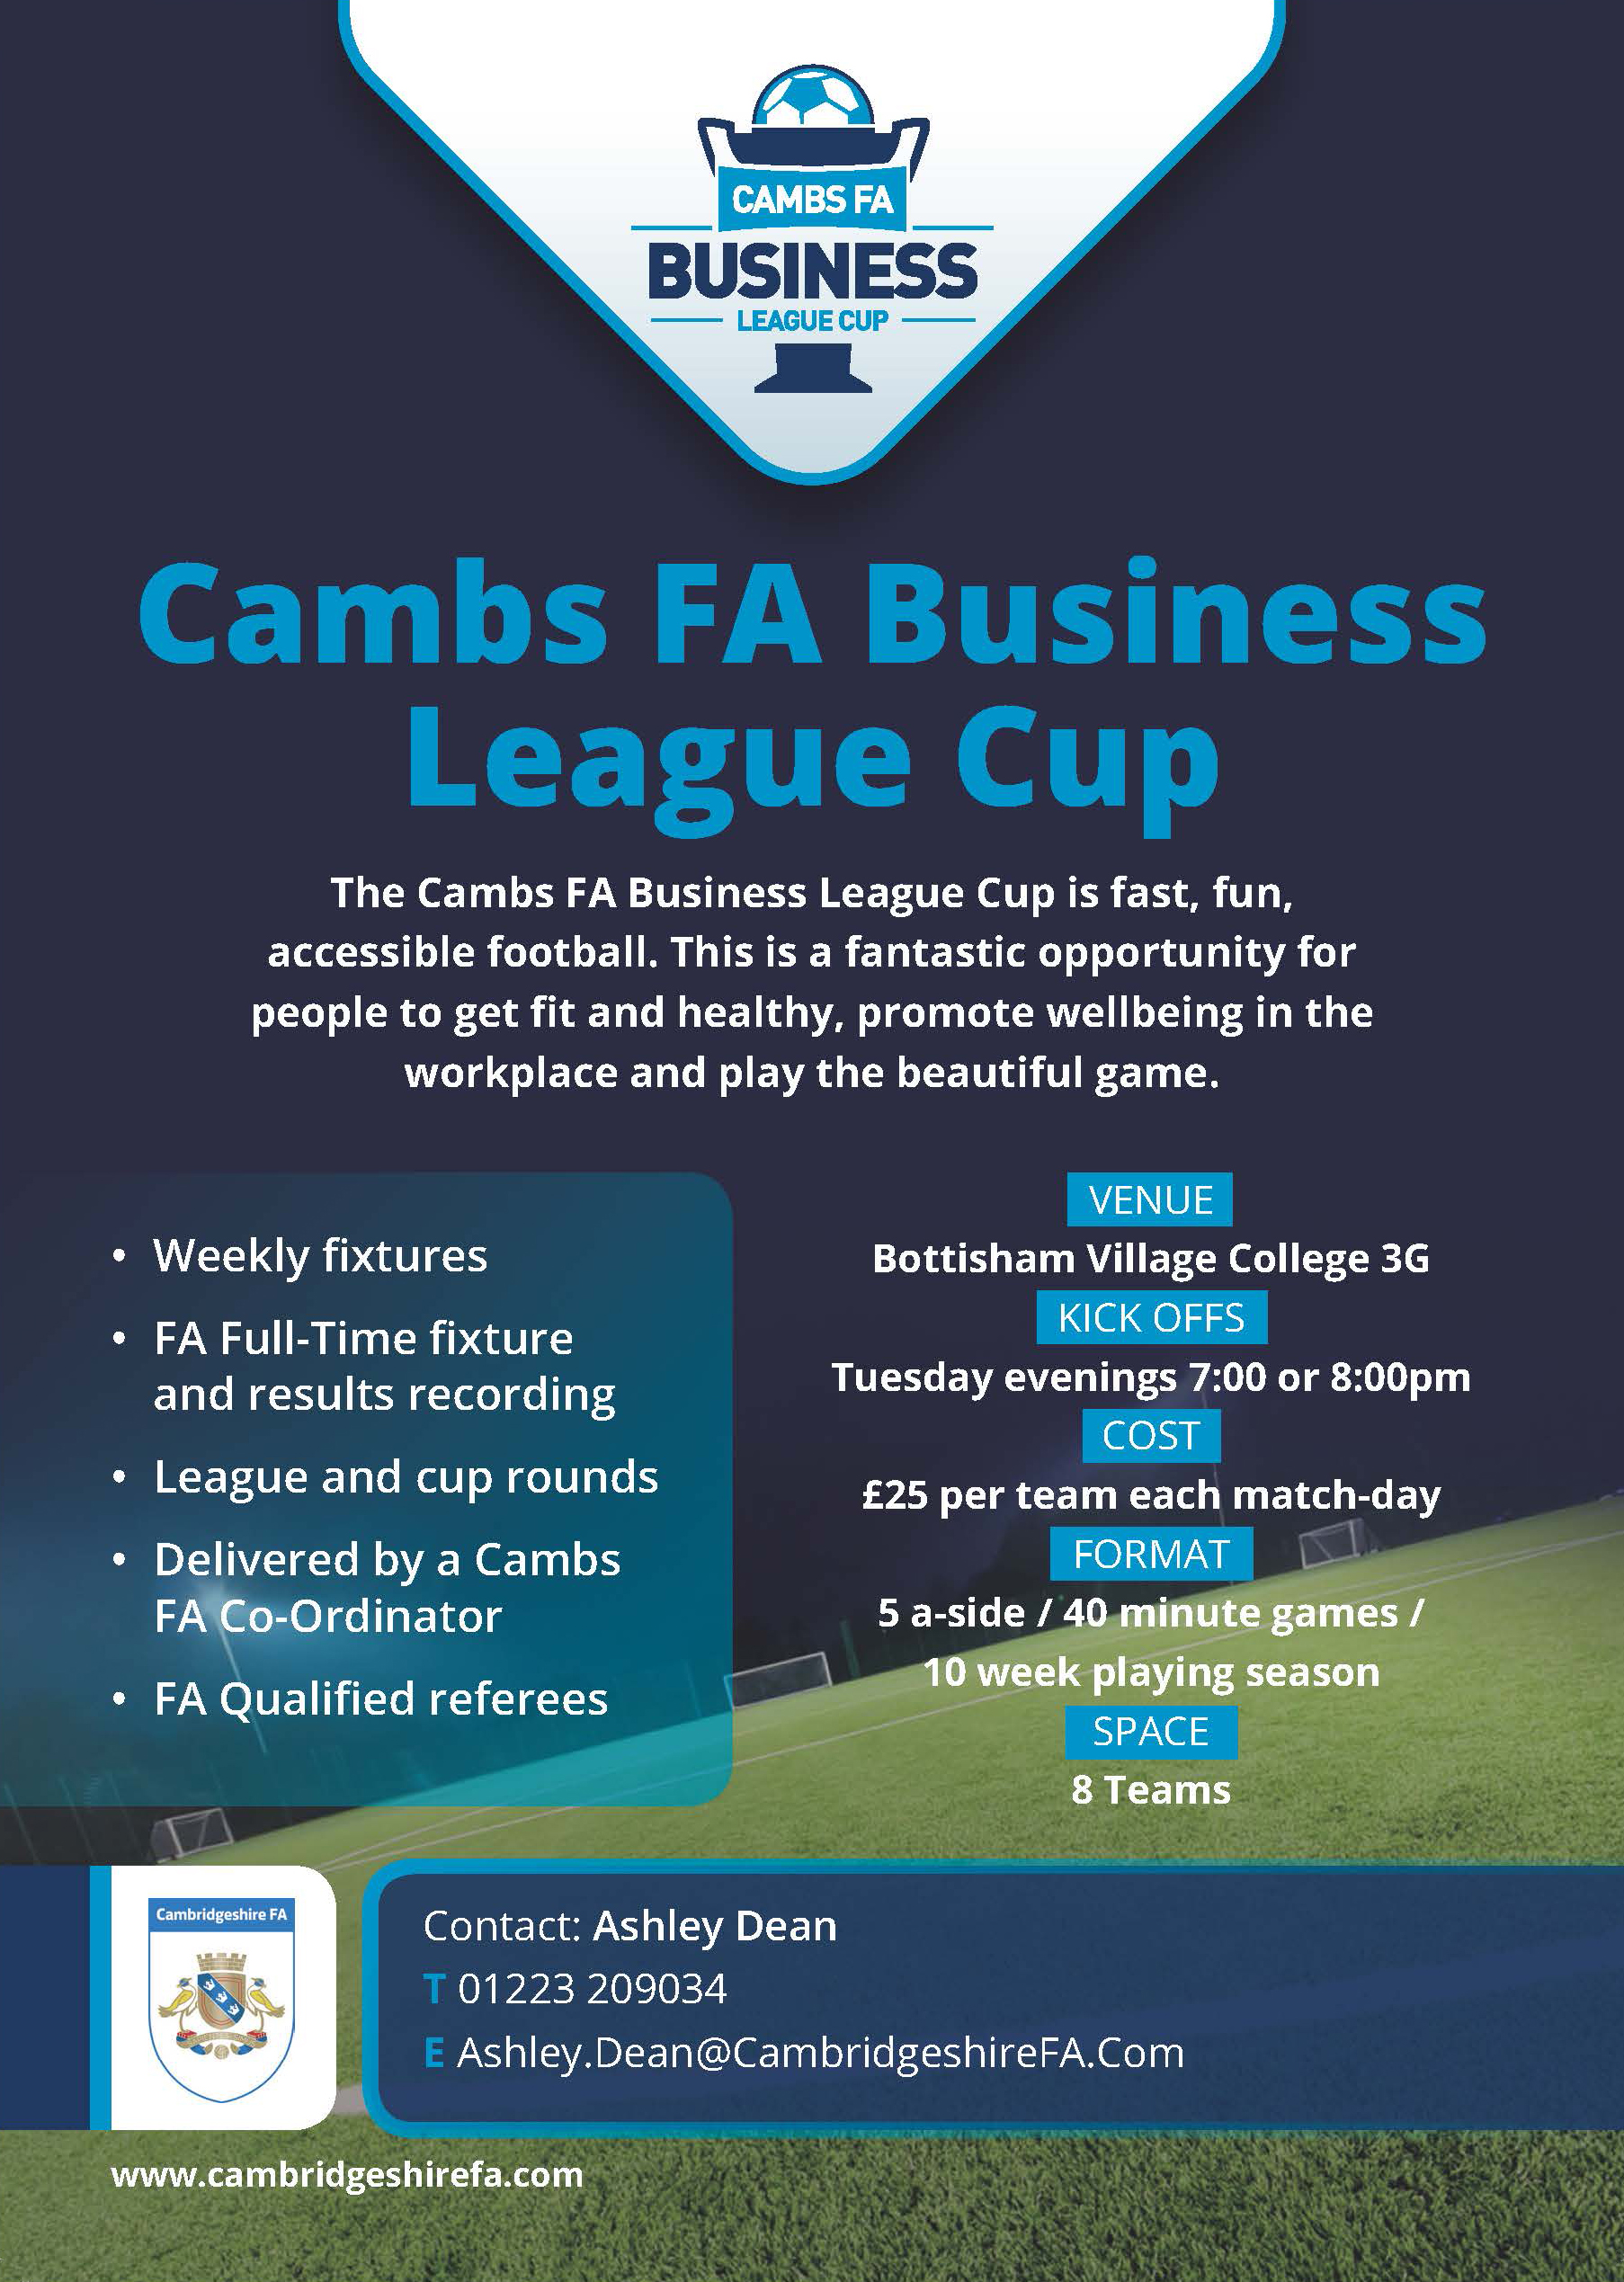 Cambs FA Business League Cup at Bottisham 3G